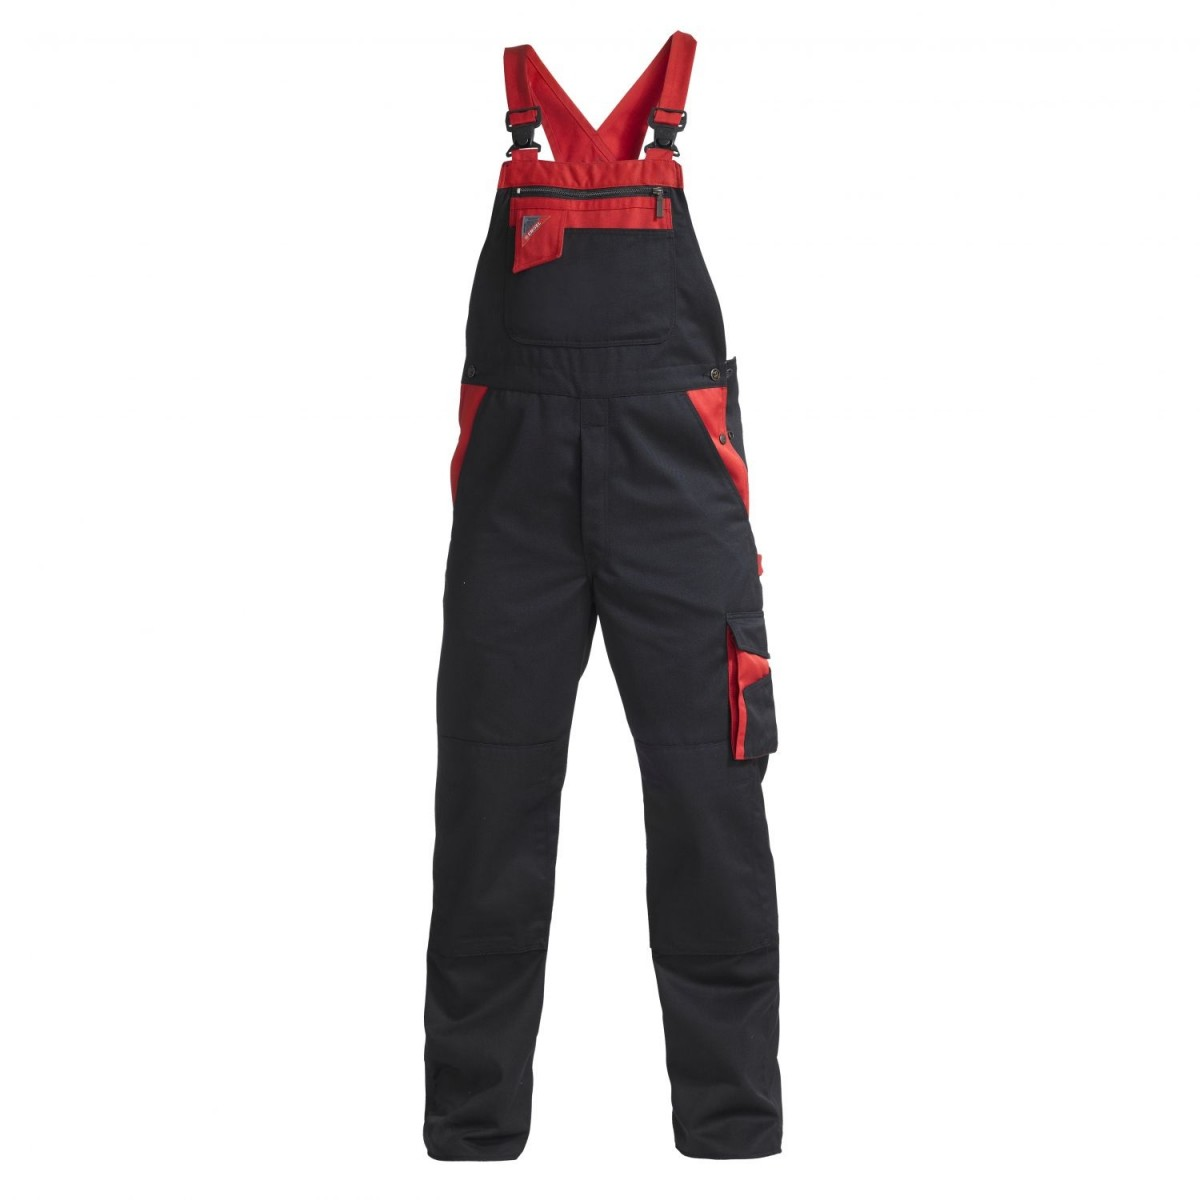 F. Engel Enterprise overalls Sort/Rød-36